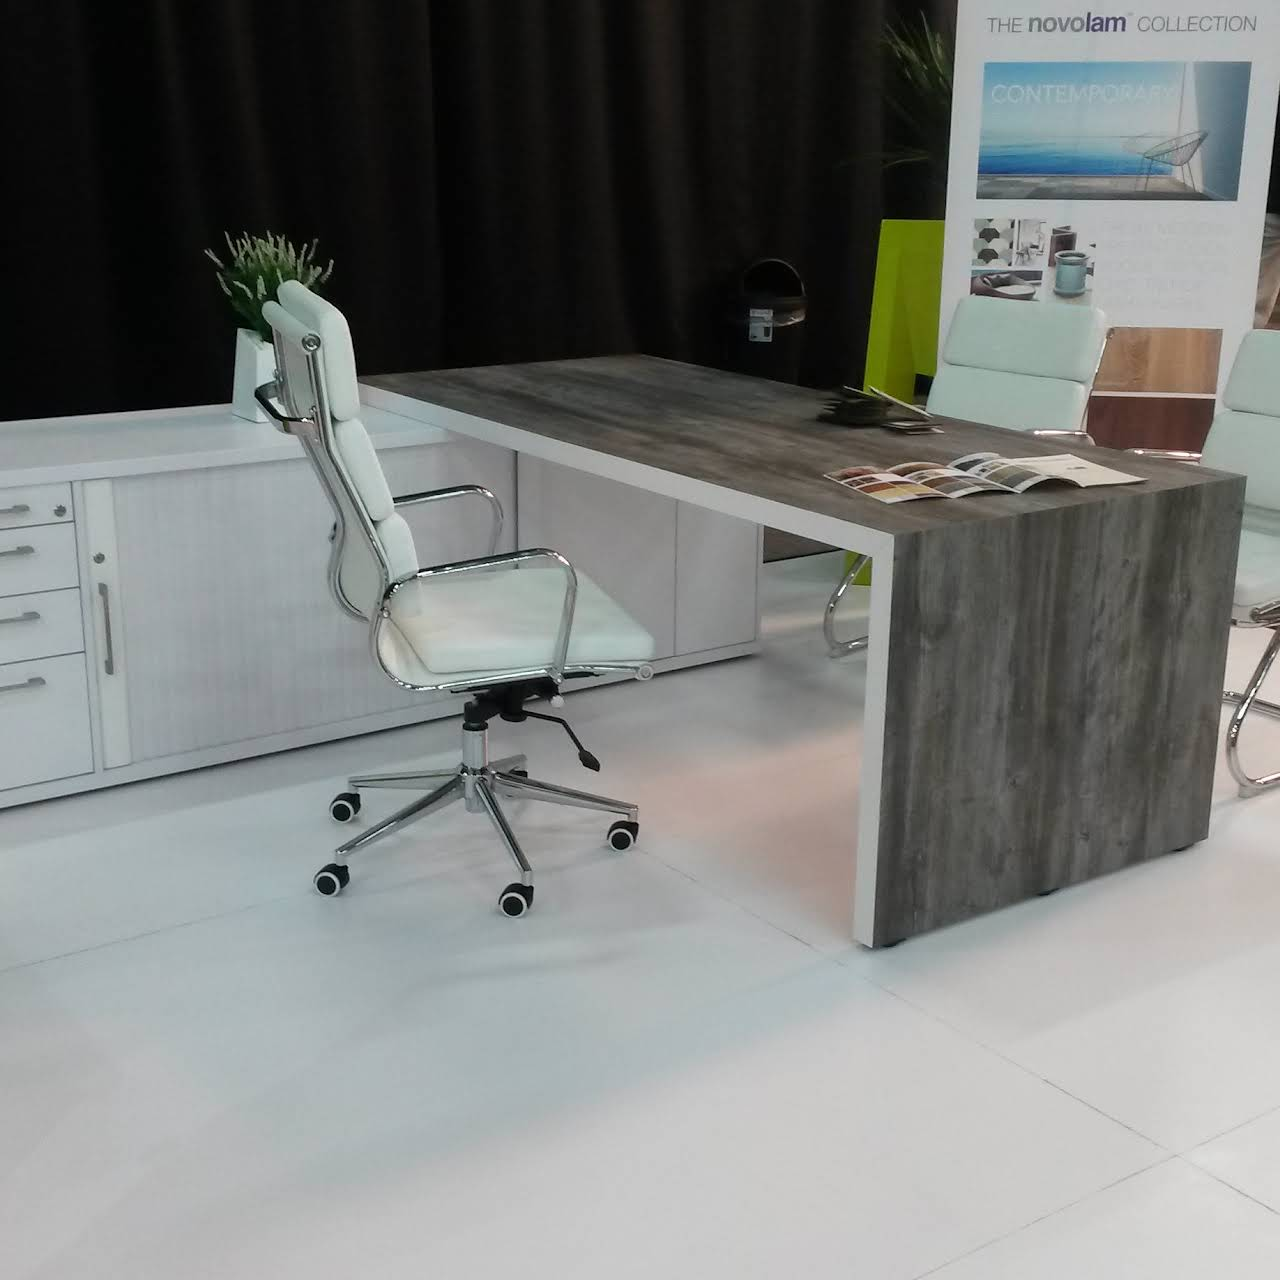 connie prinsloo office furniture - office furniture store in tieger